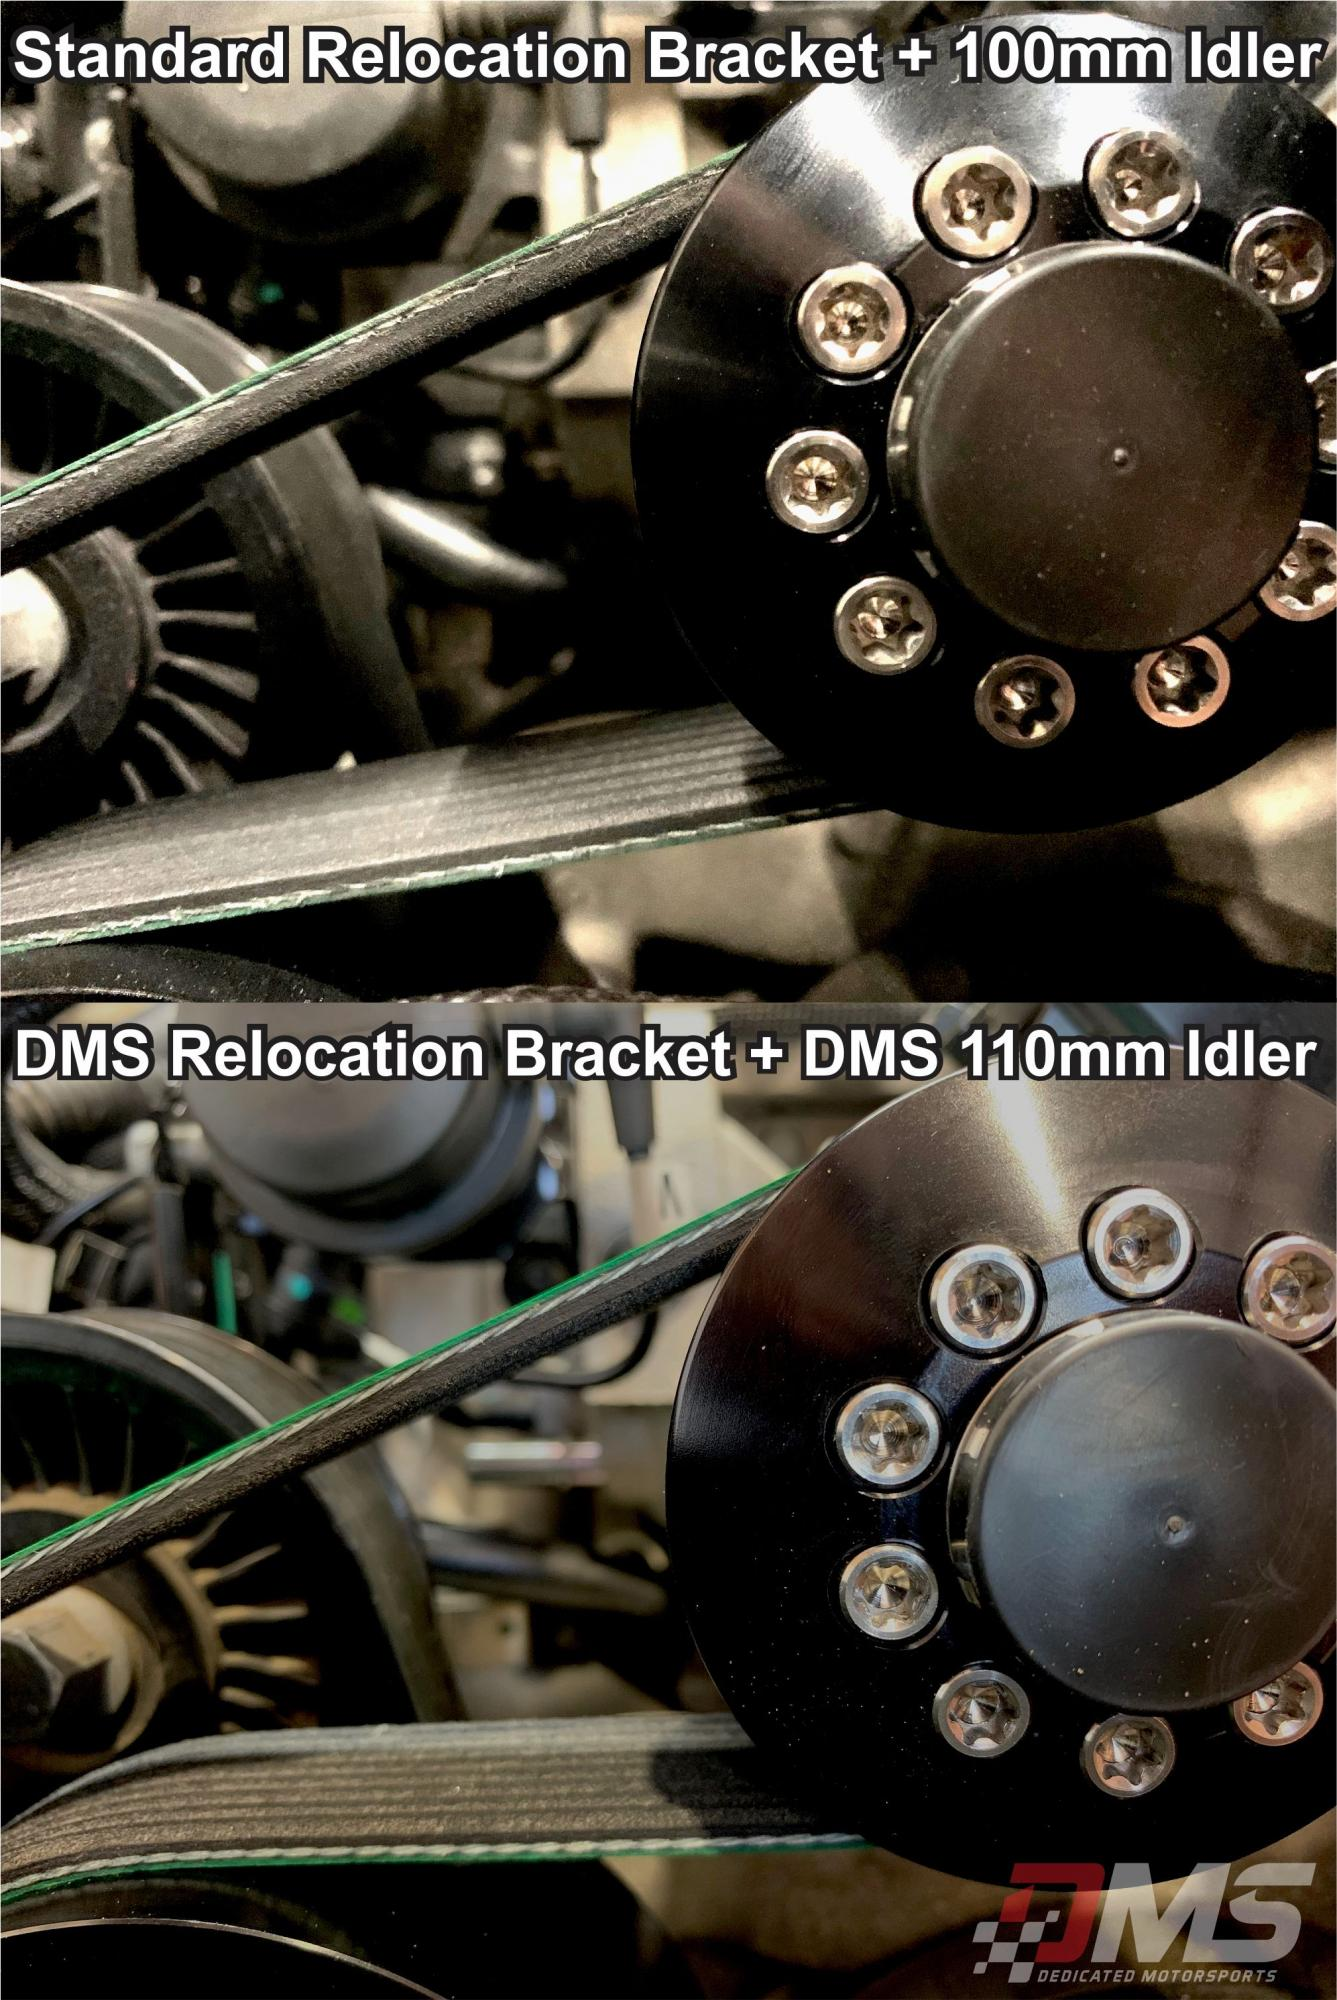 New +5mm Idler relocation bracket and 110mm idler pulley for max belt wrap. Now in stock at DMS-idler-comparison.jpg